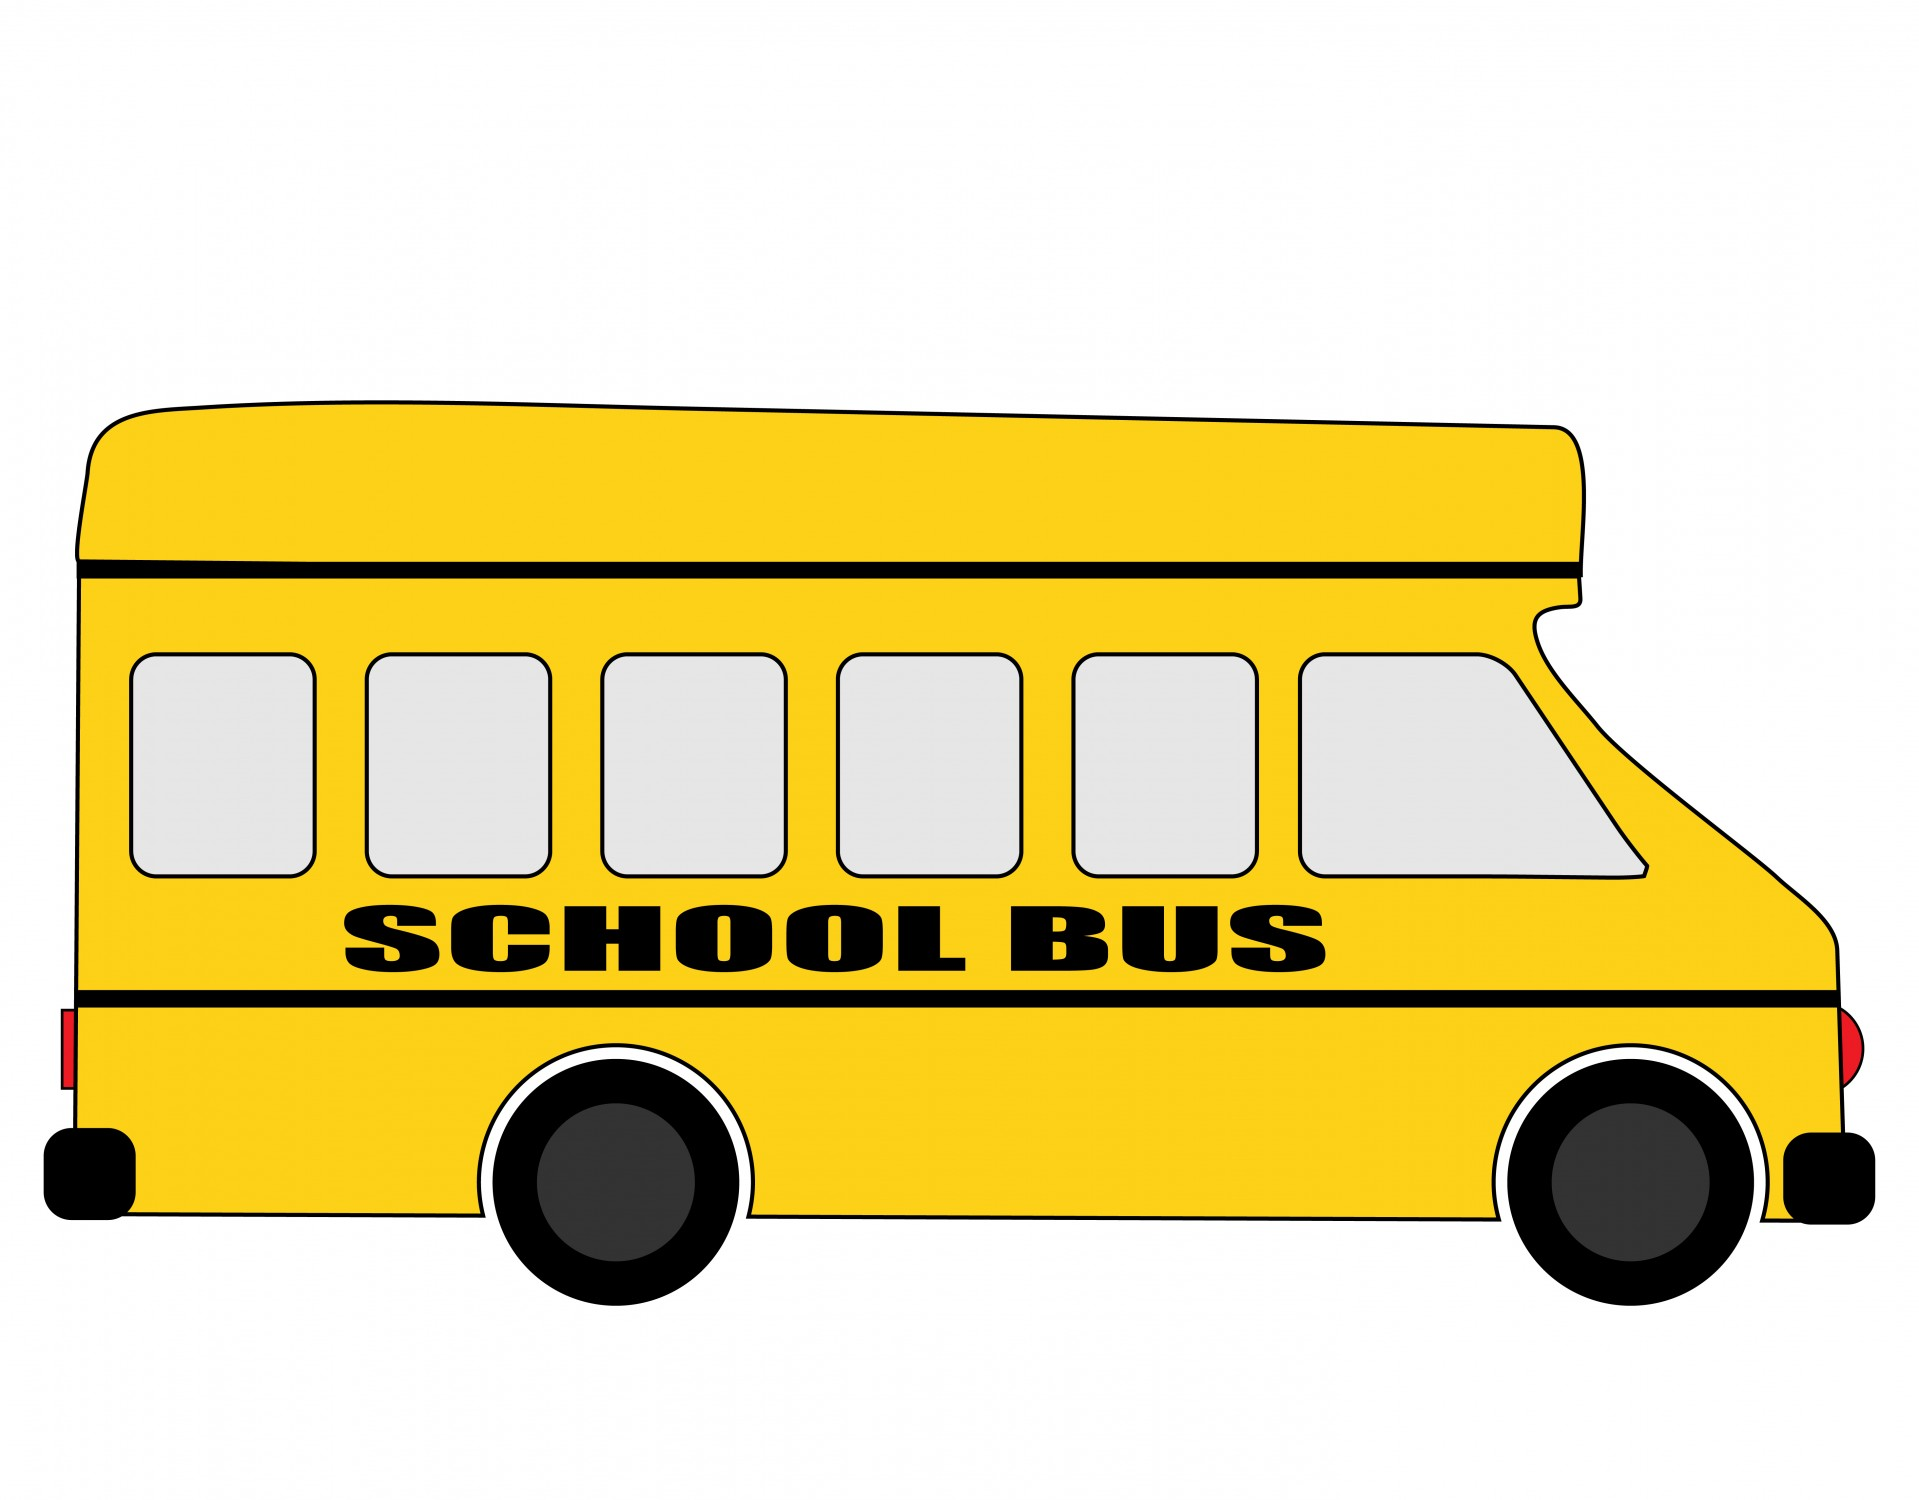 school bus clipart for kids at getdrawings com free for personal rh getdrawings com School Bus Driver Seat School Bus Wheels Clip Art